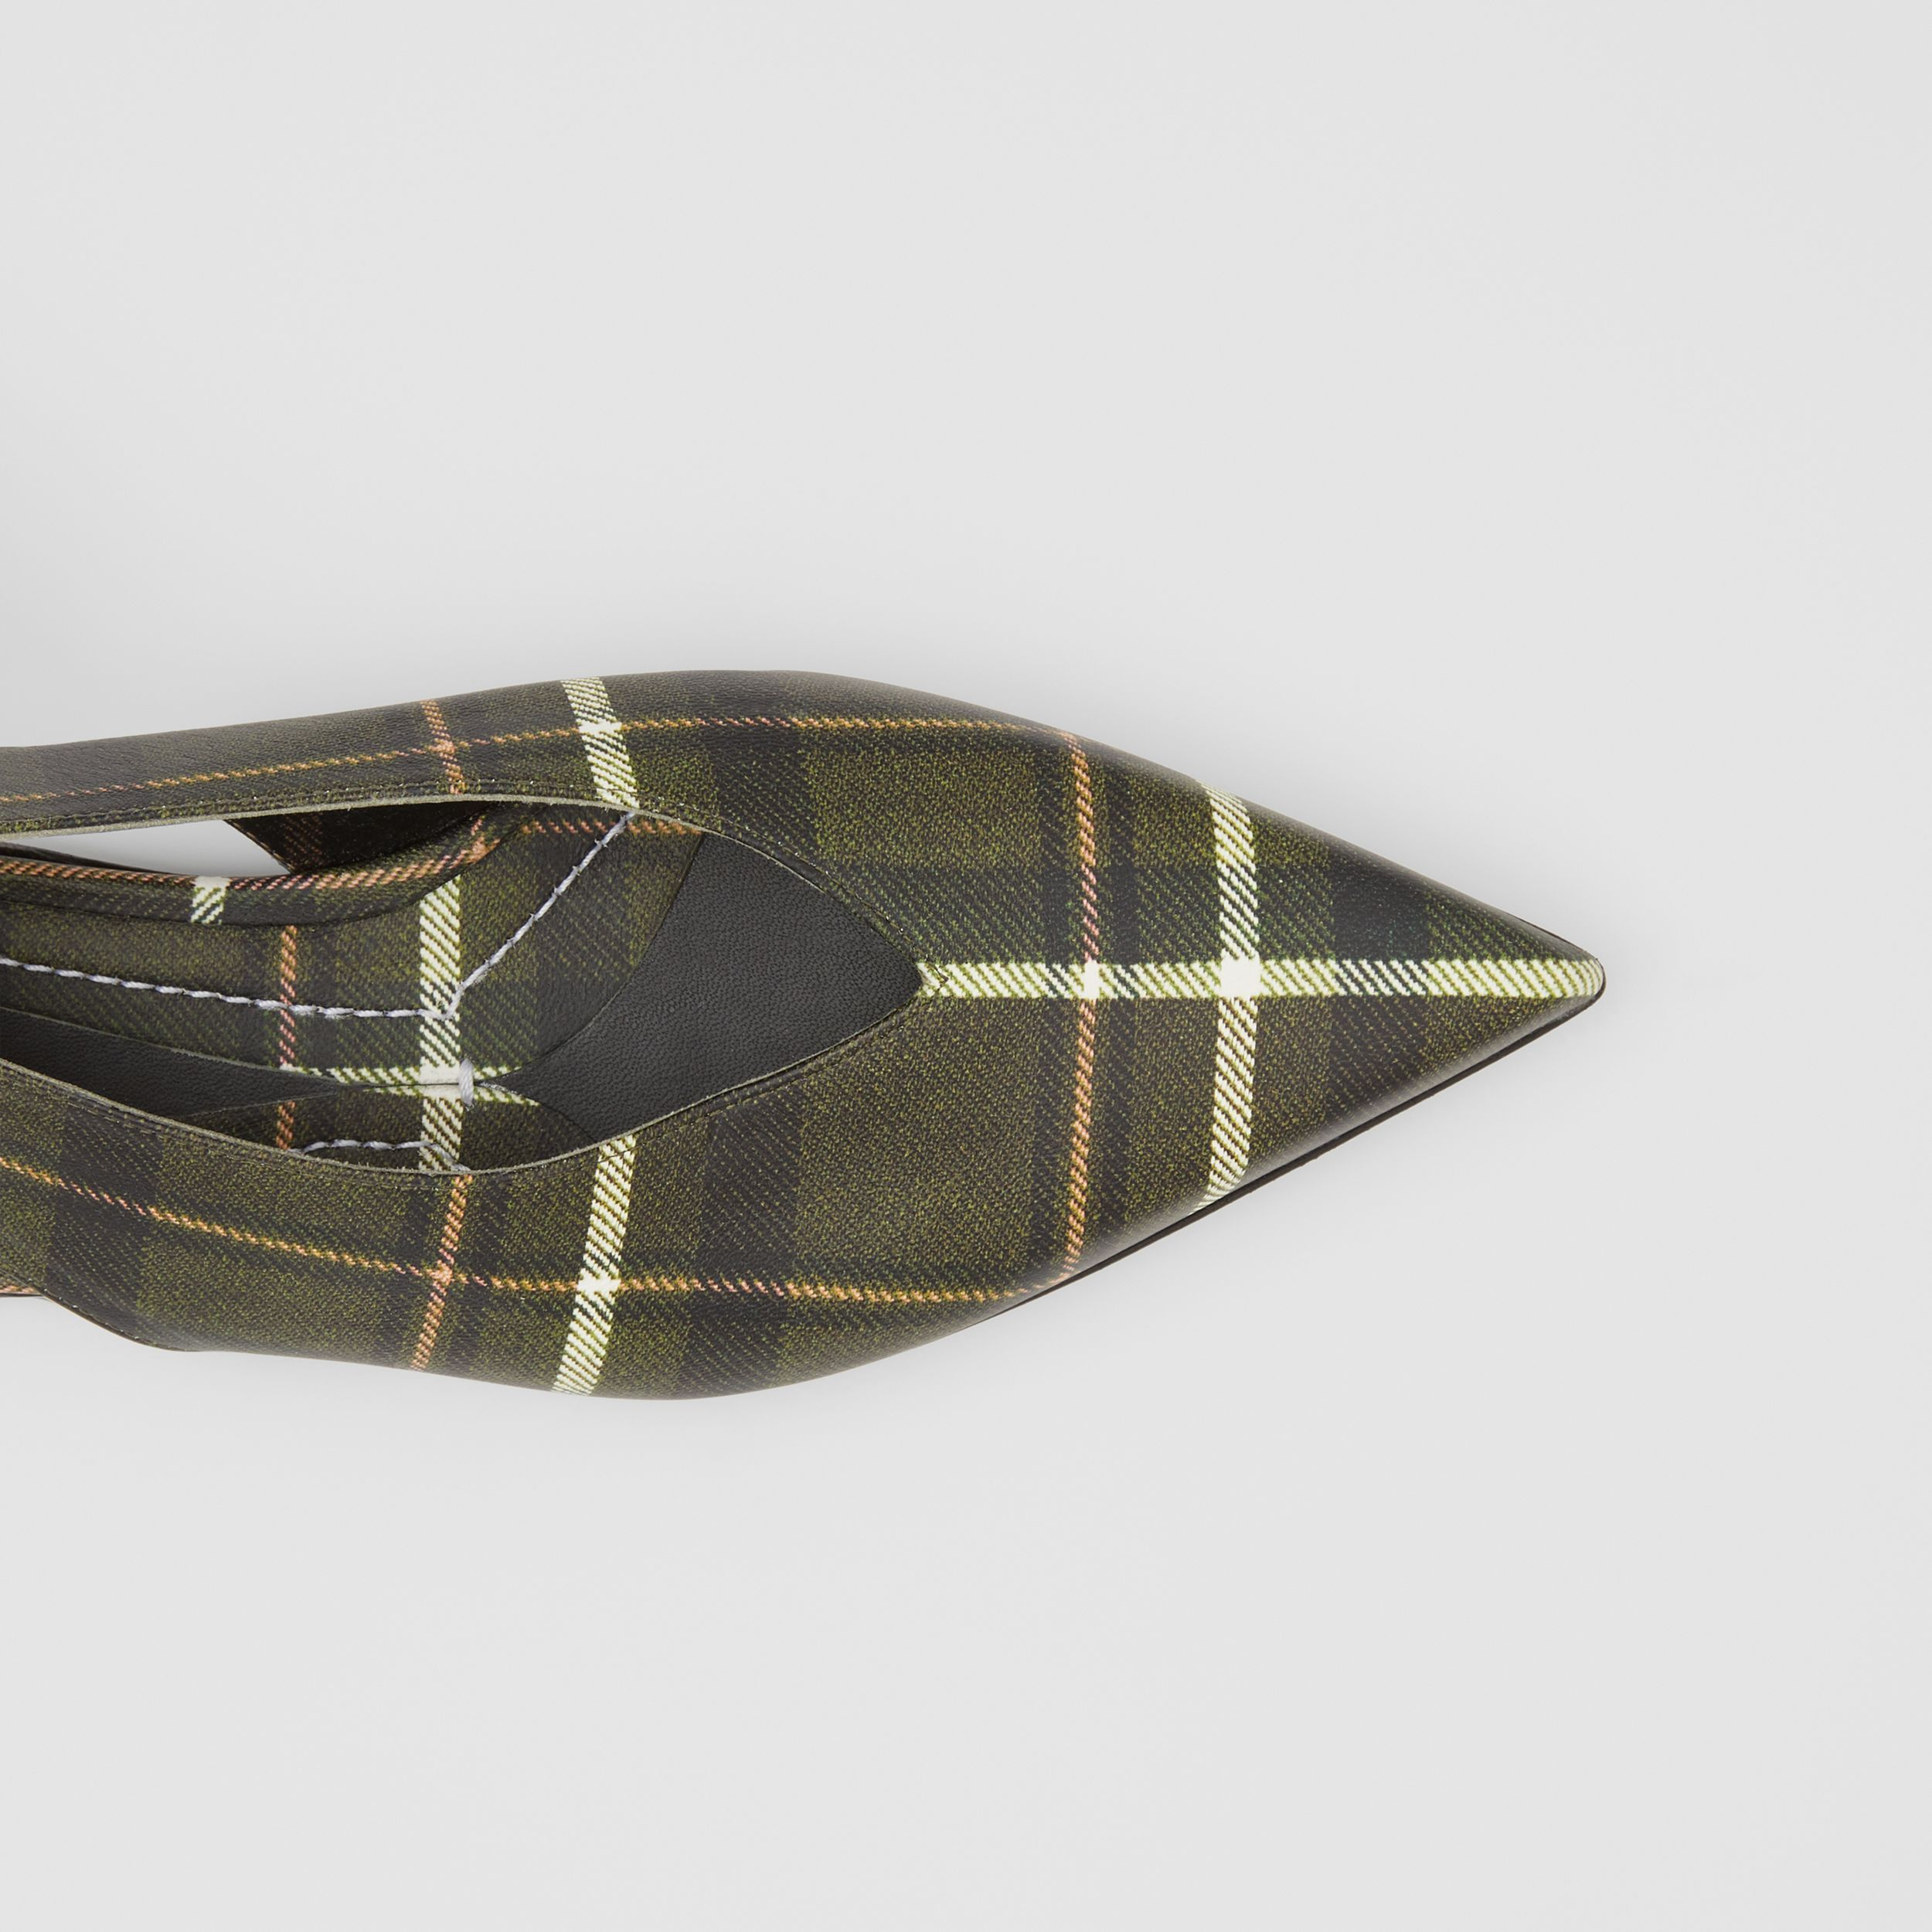 Tie Detail Tartan Print Leather Point-toe Mules in Dark Khaki Green - Women | Burberry Australia - 2